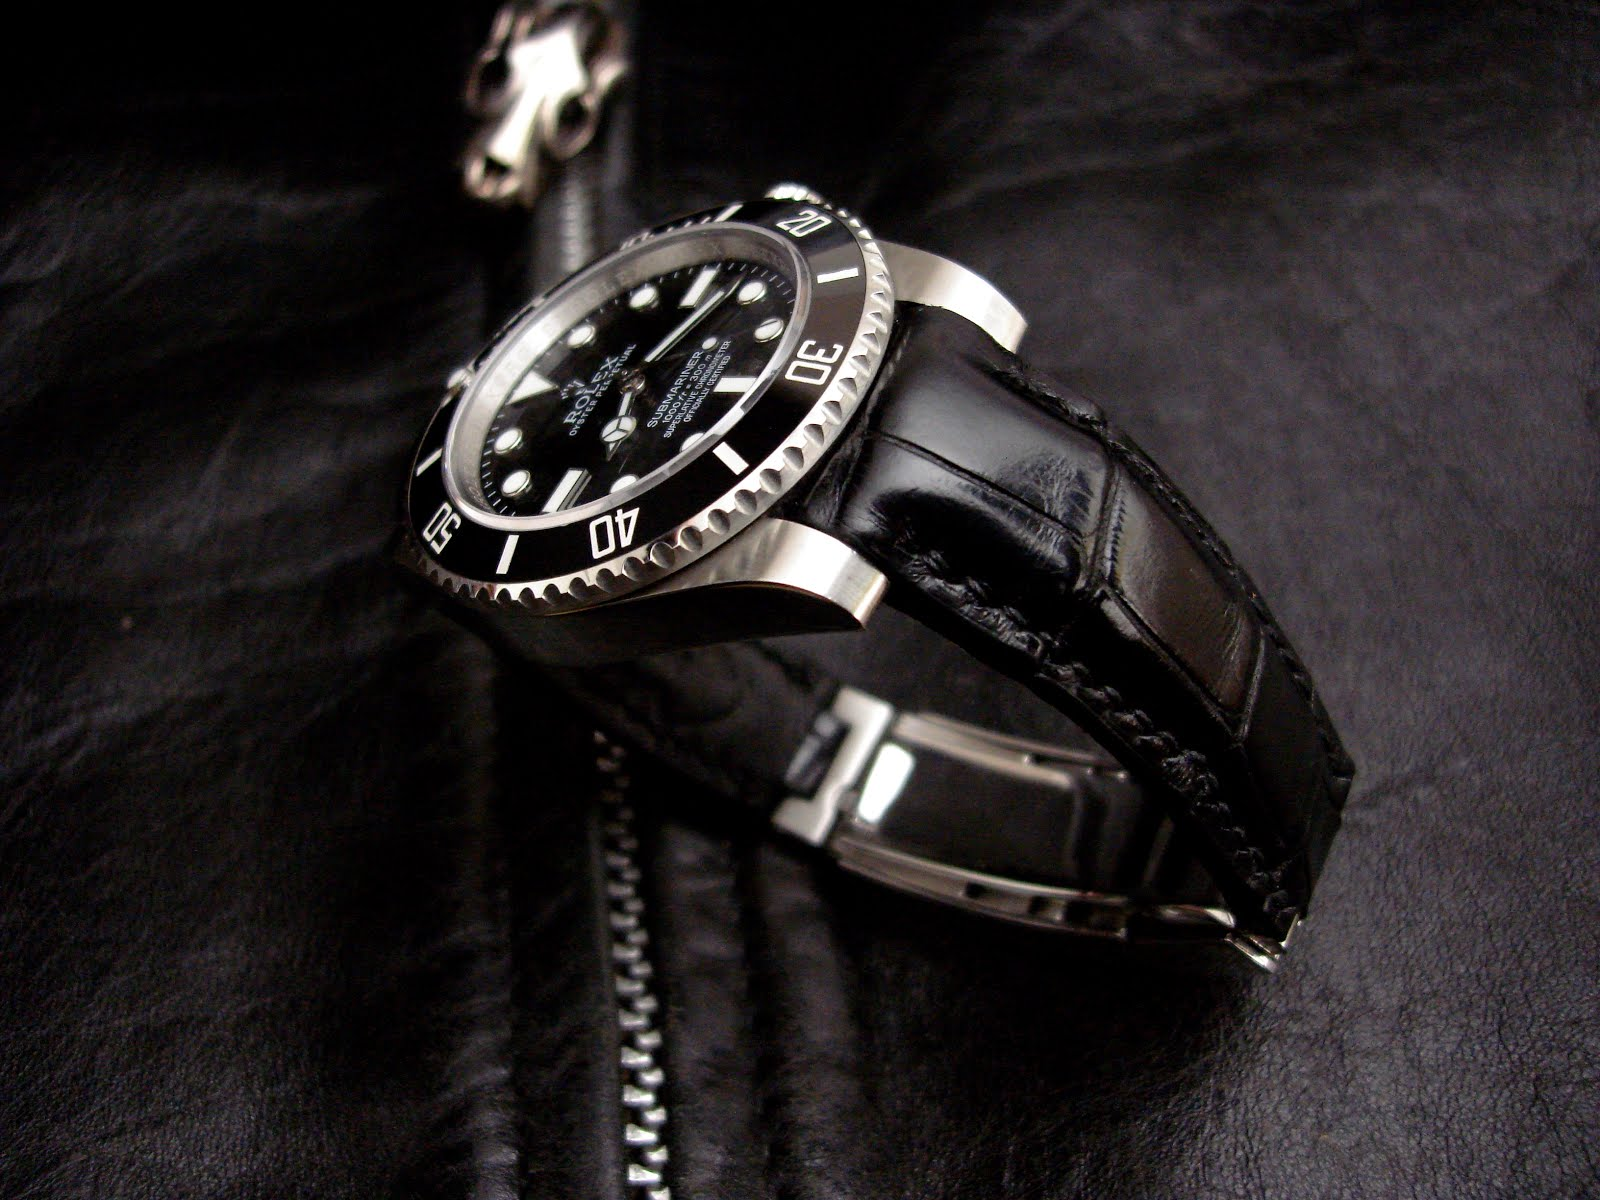 Rolex Sub on 'Million Dollar' Black with TCLS and Glide-Lock clasp fit